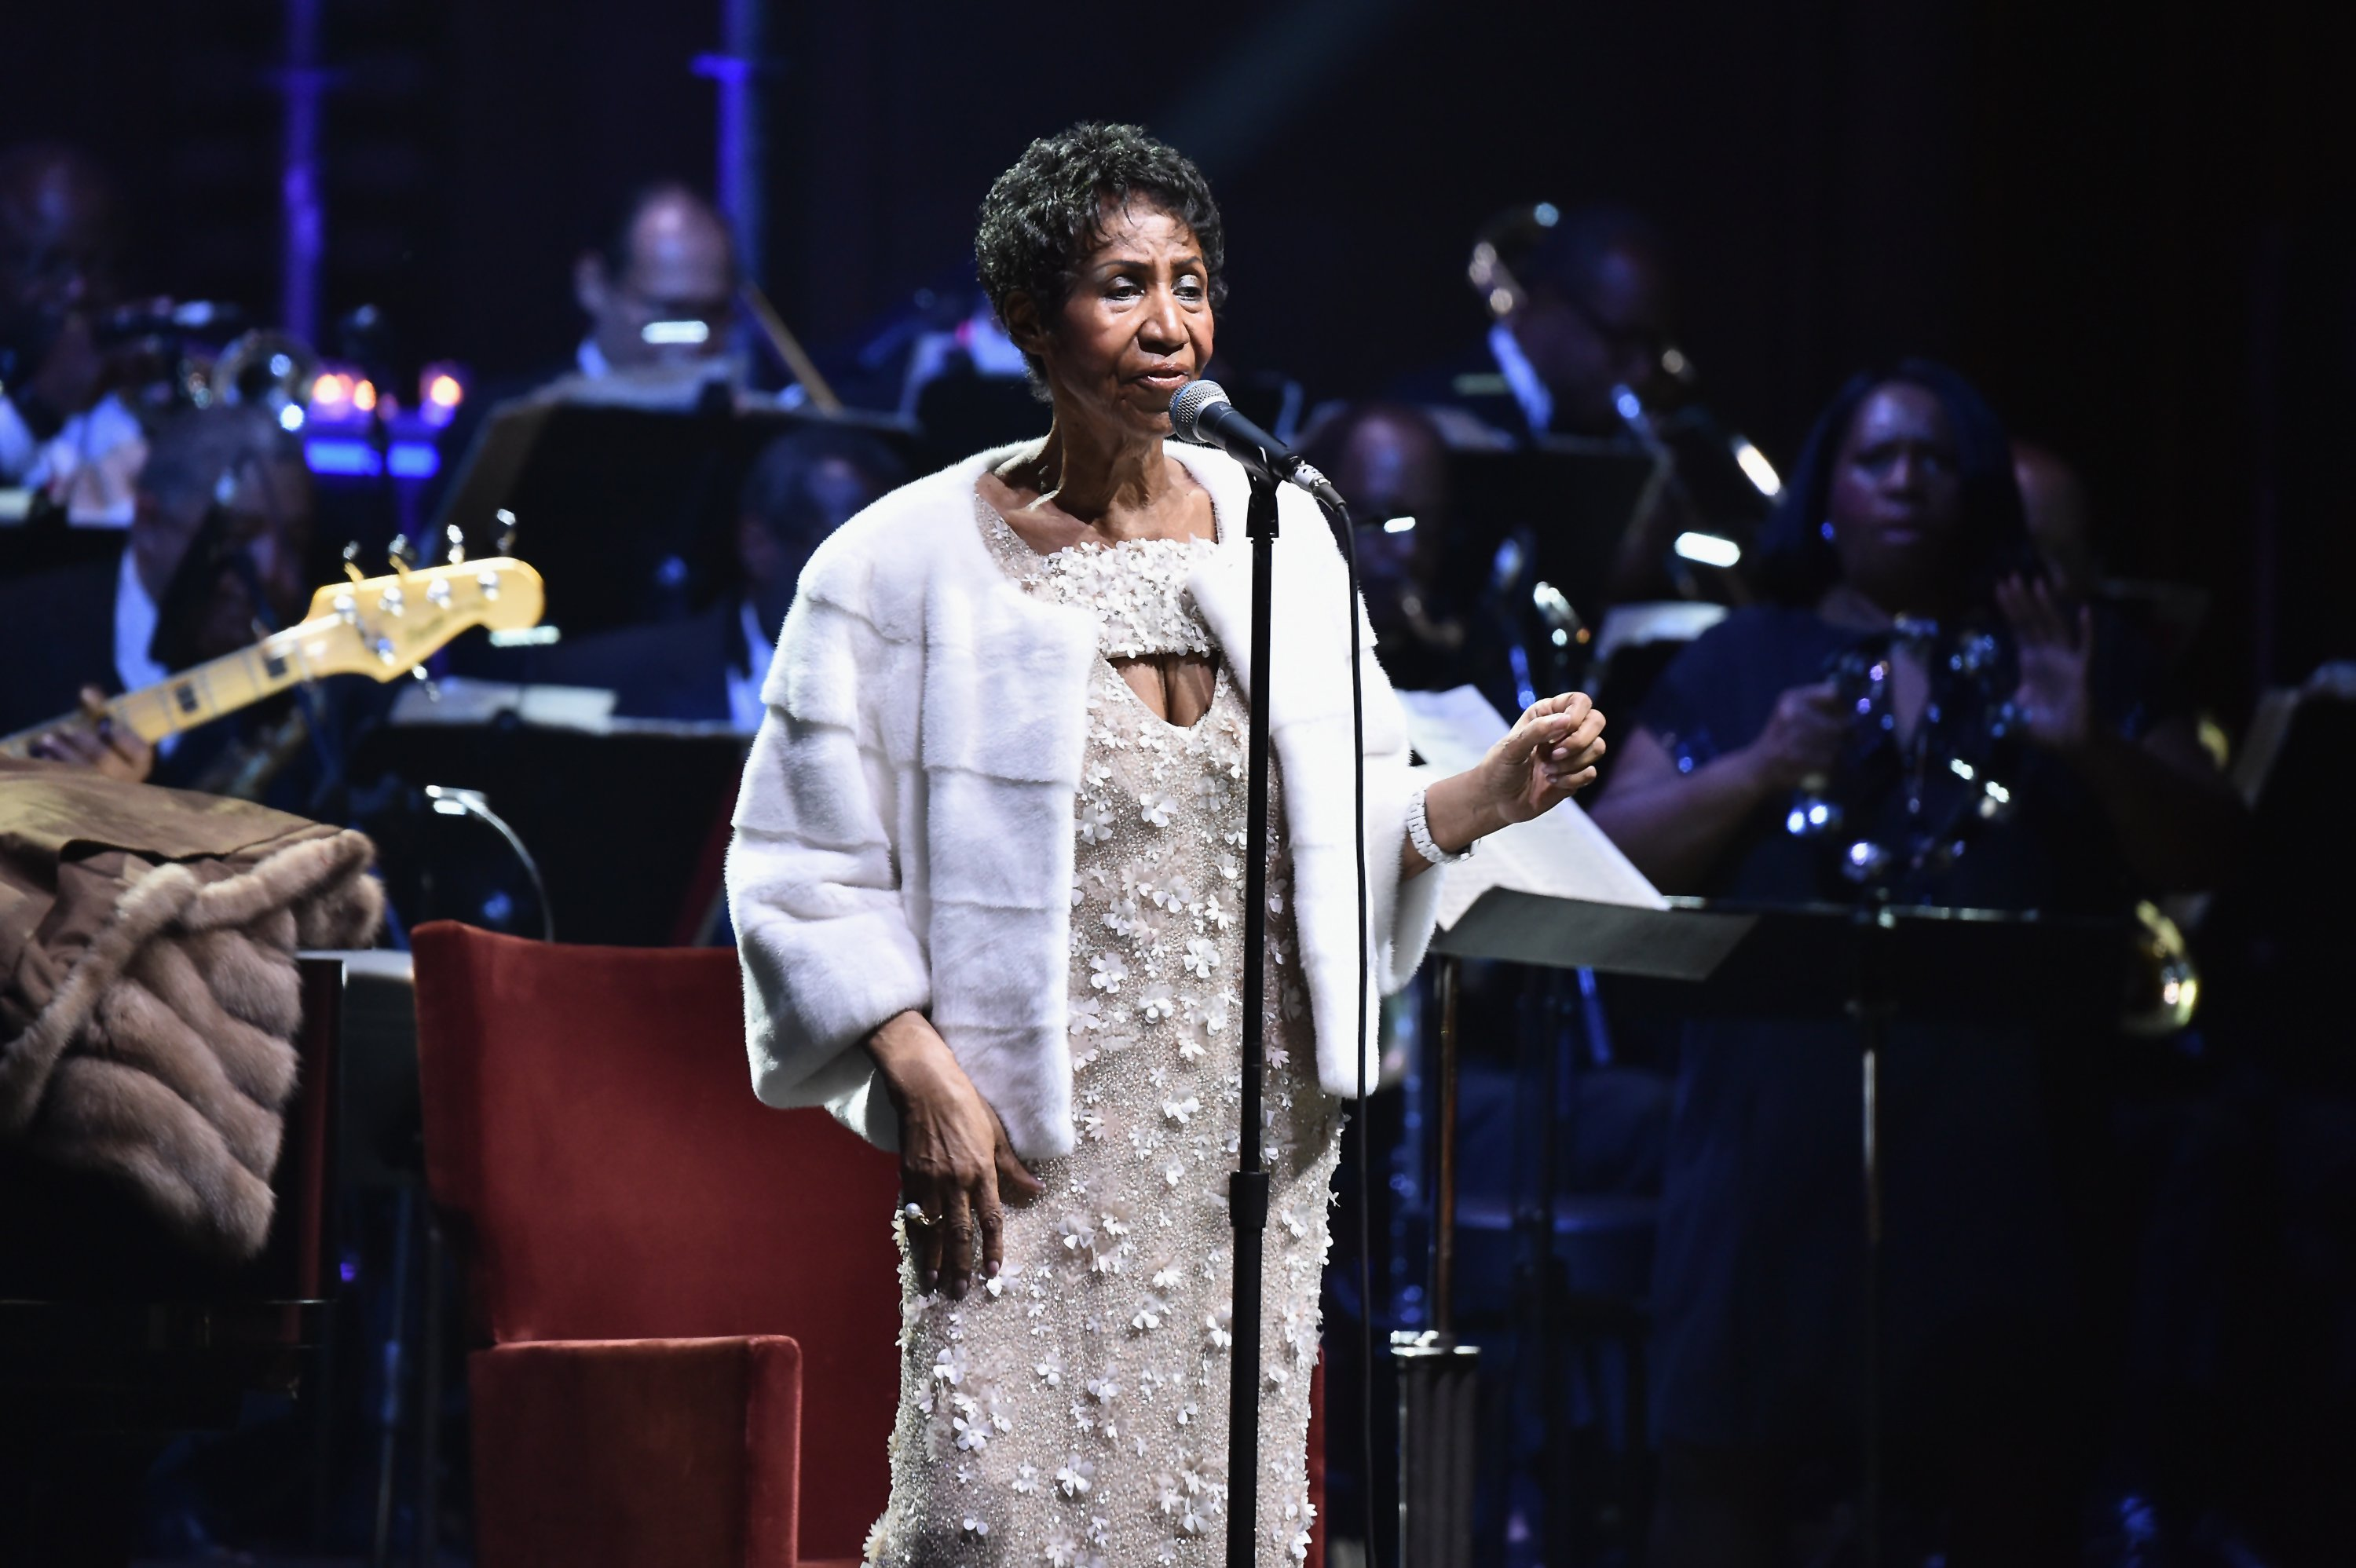 Aretha Franklin performing t the Elton John AIDS Foundation Commemorates Its 25th Year at the Cathedral of St. John in New York on November 7, 2017. | Photo: Getty Images